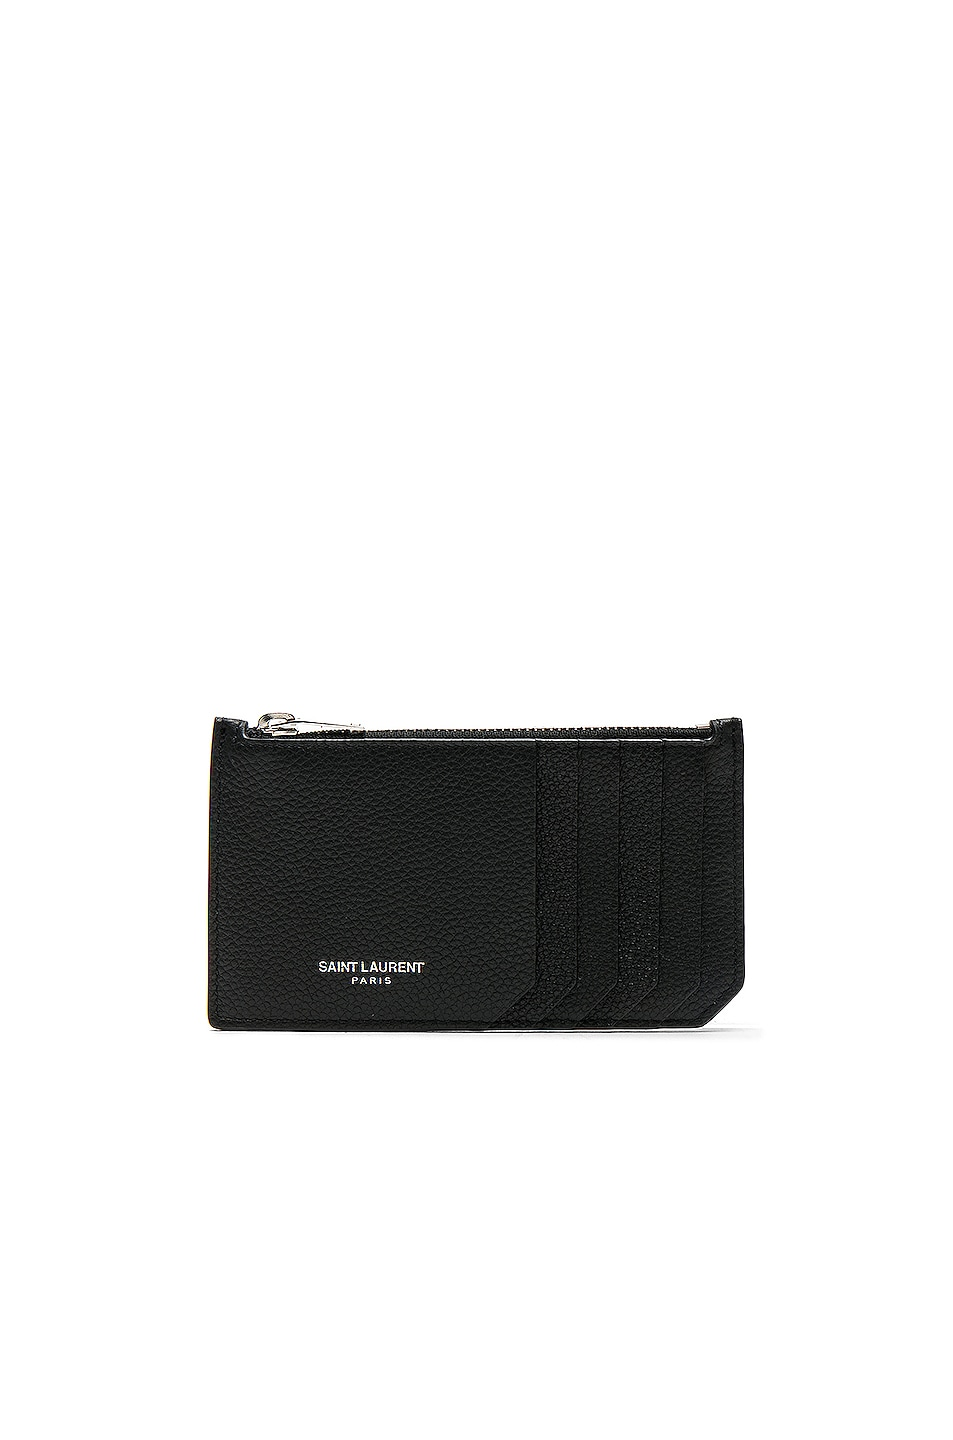 Image 1 of Saint Laurent Zipped Fragments Credit Card Case in Black